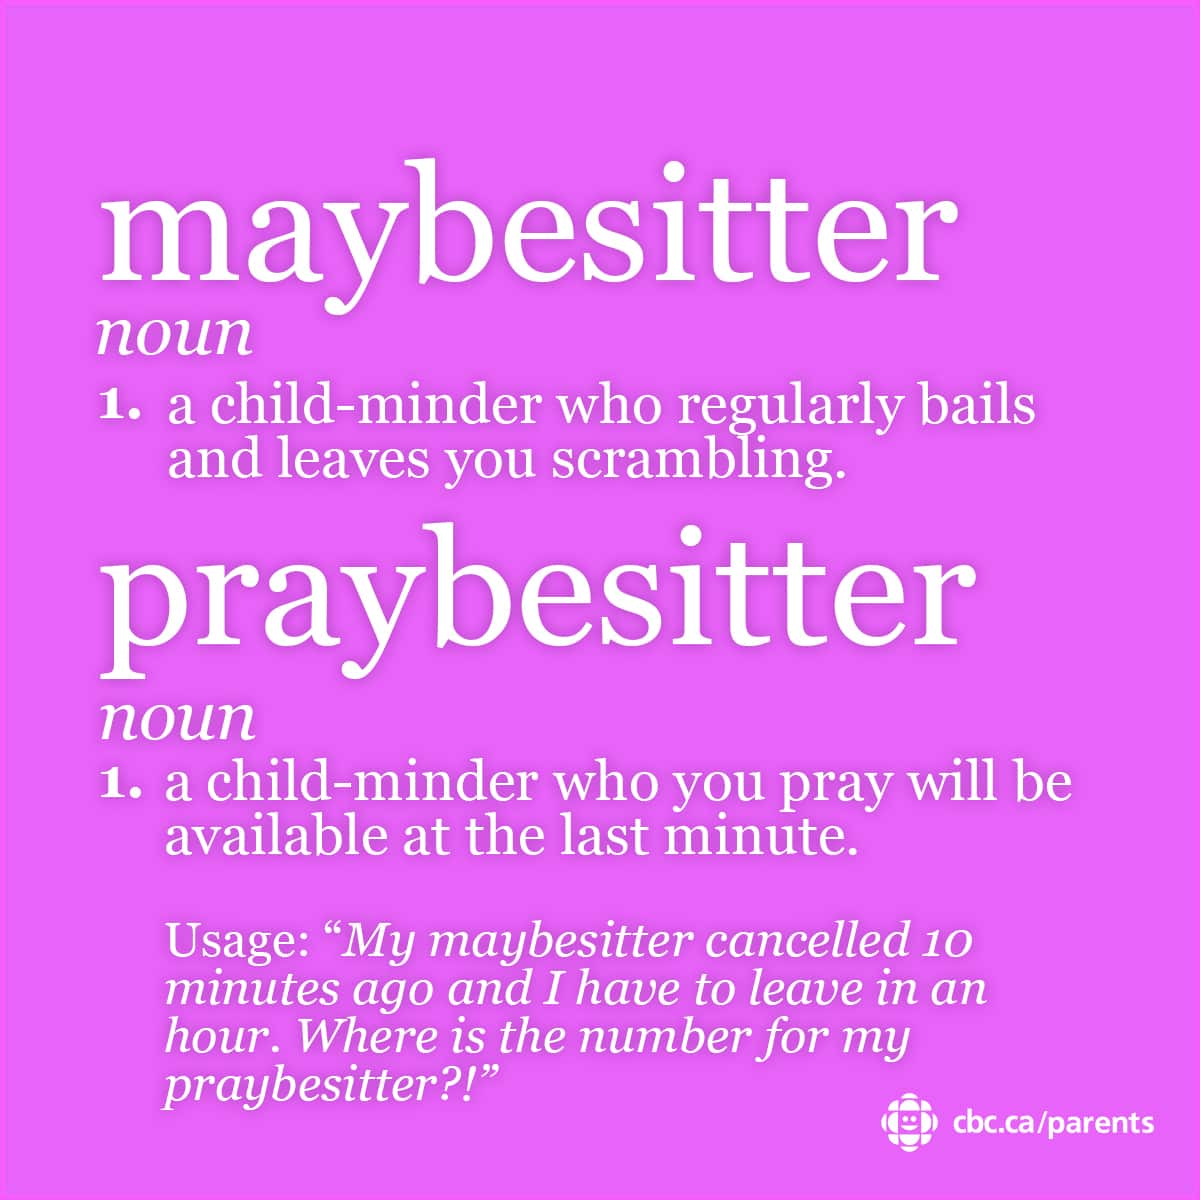 Maybesitter: a child-minder who regularly bails and leaves you scrambling. Praybesitter:a child-minder who you pray will be available at the last minute.